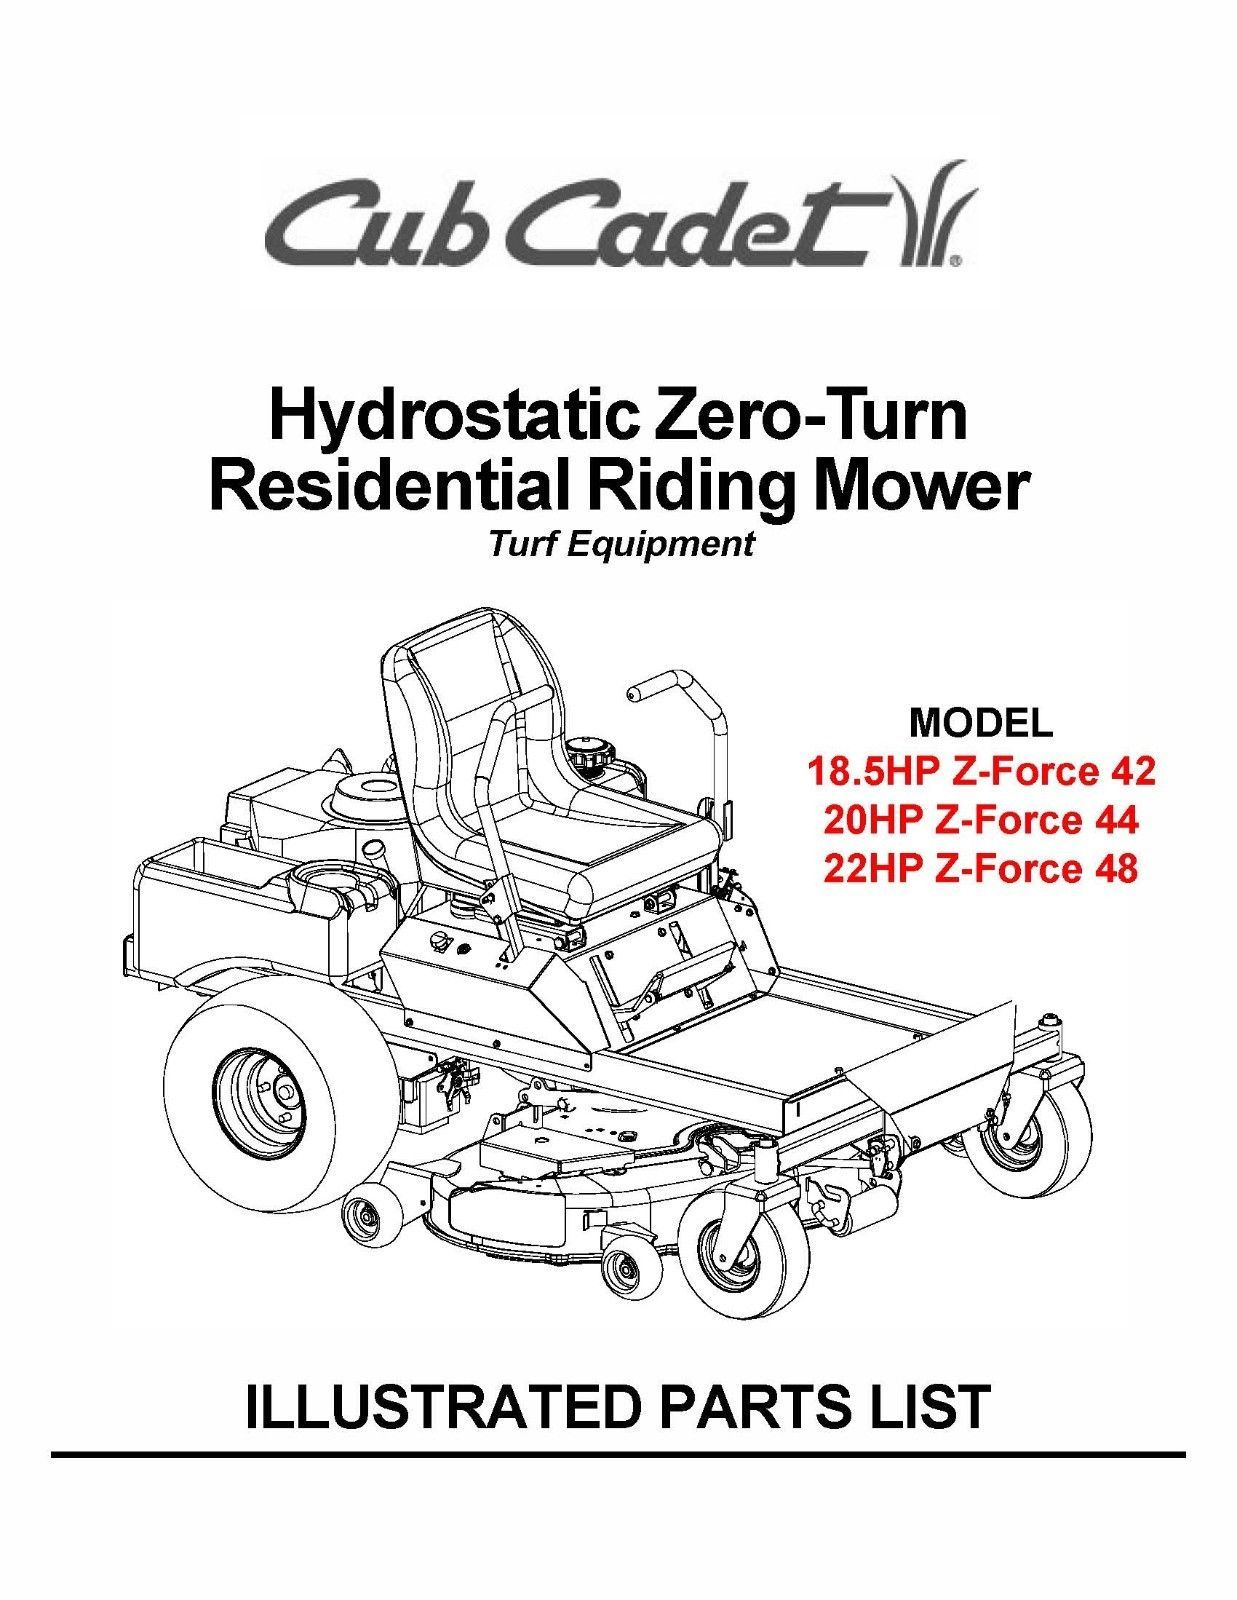 Cub Cadet Hydrostatic ZeroTurn Riding Mower and 47 similar